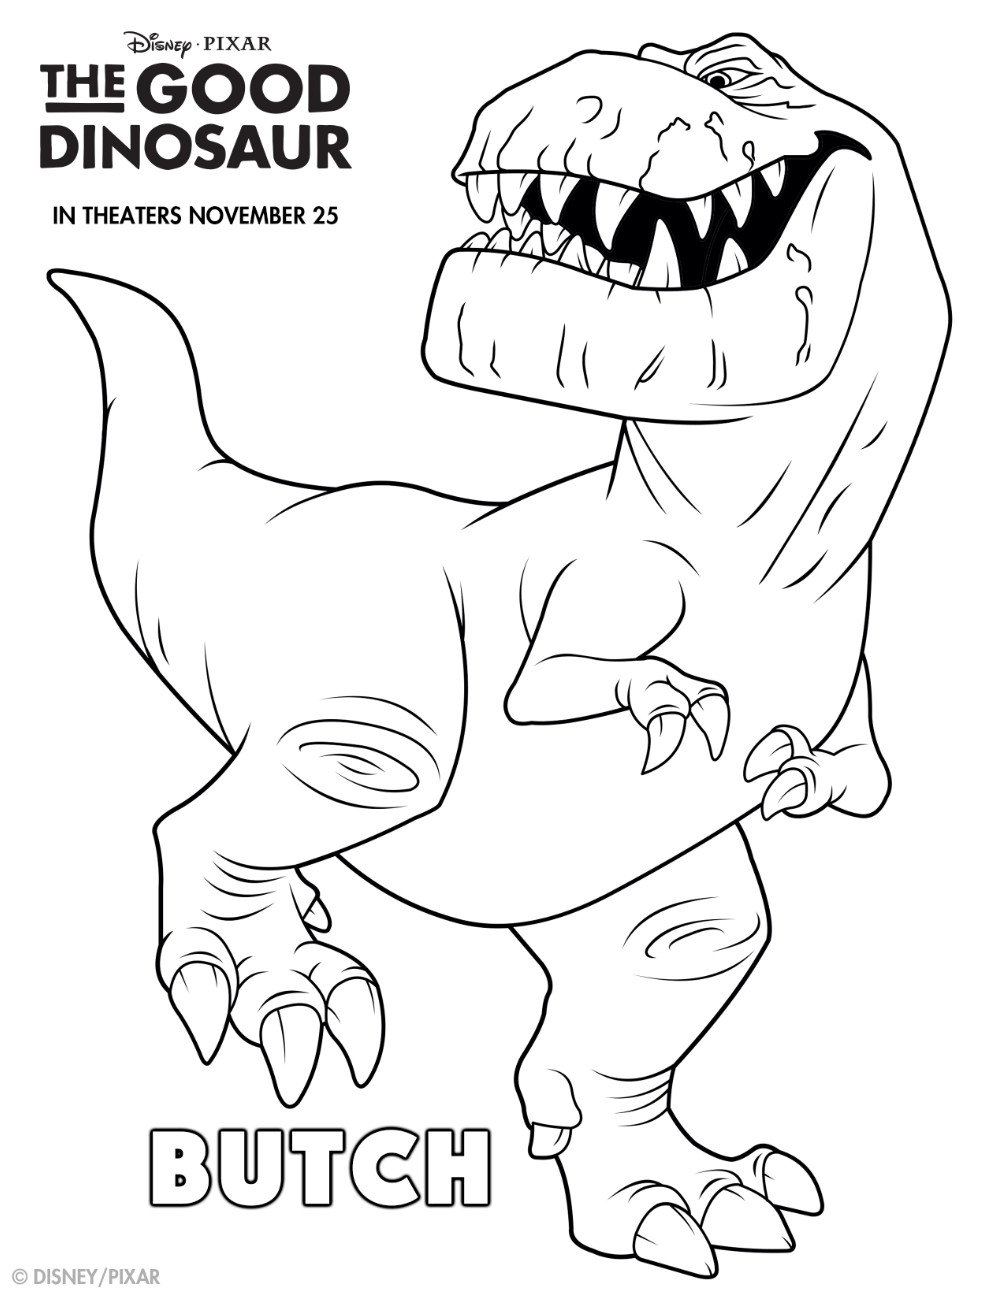 Scary Dinosaur Coloring Pages Scary Dinosaur Coloring Pages With Ba Dinosaur Coloring Pages